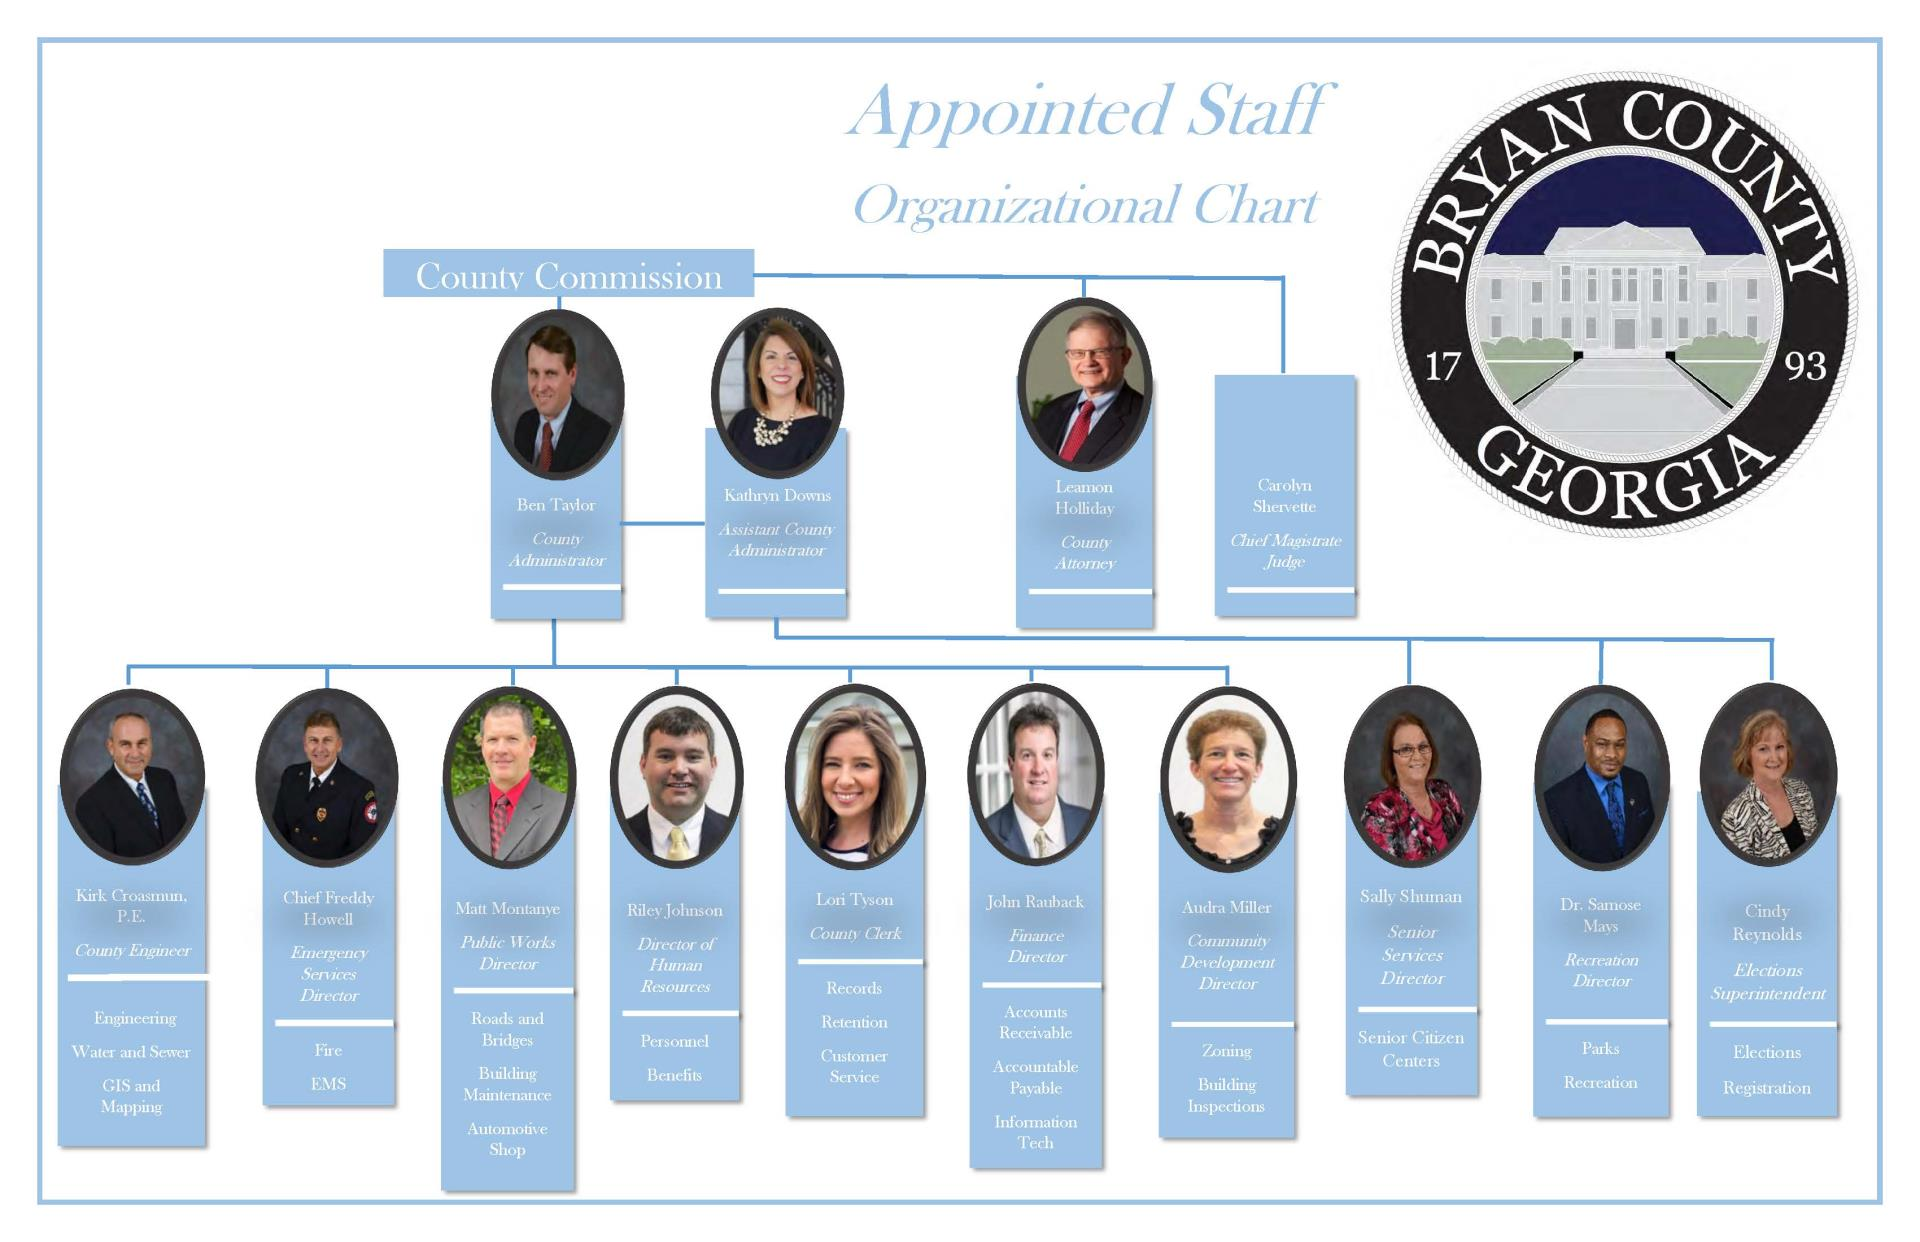 Bryan County Organization Chart Appointed Staff